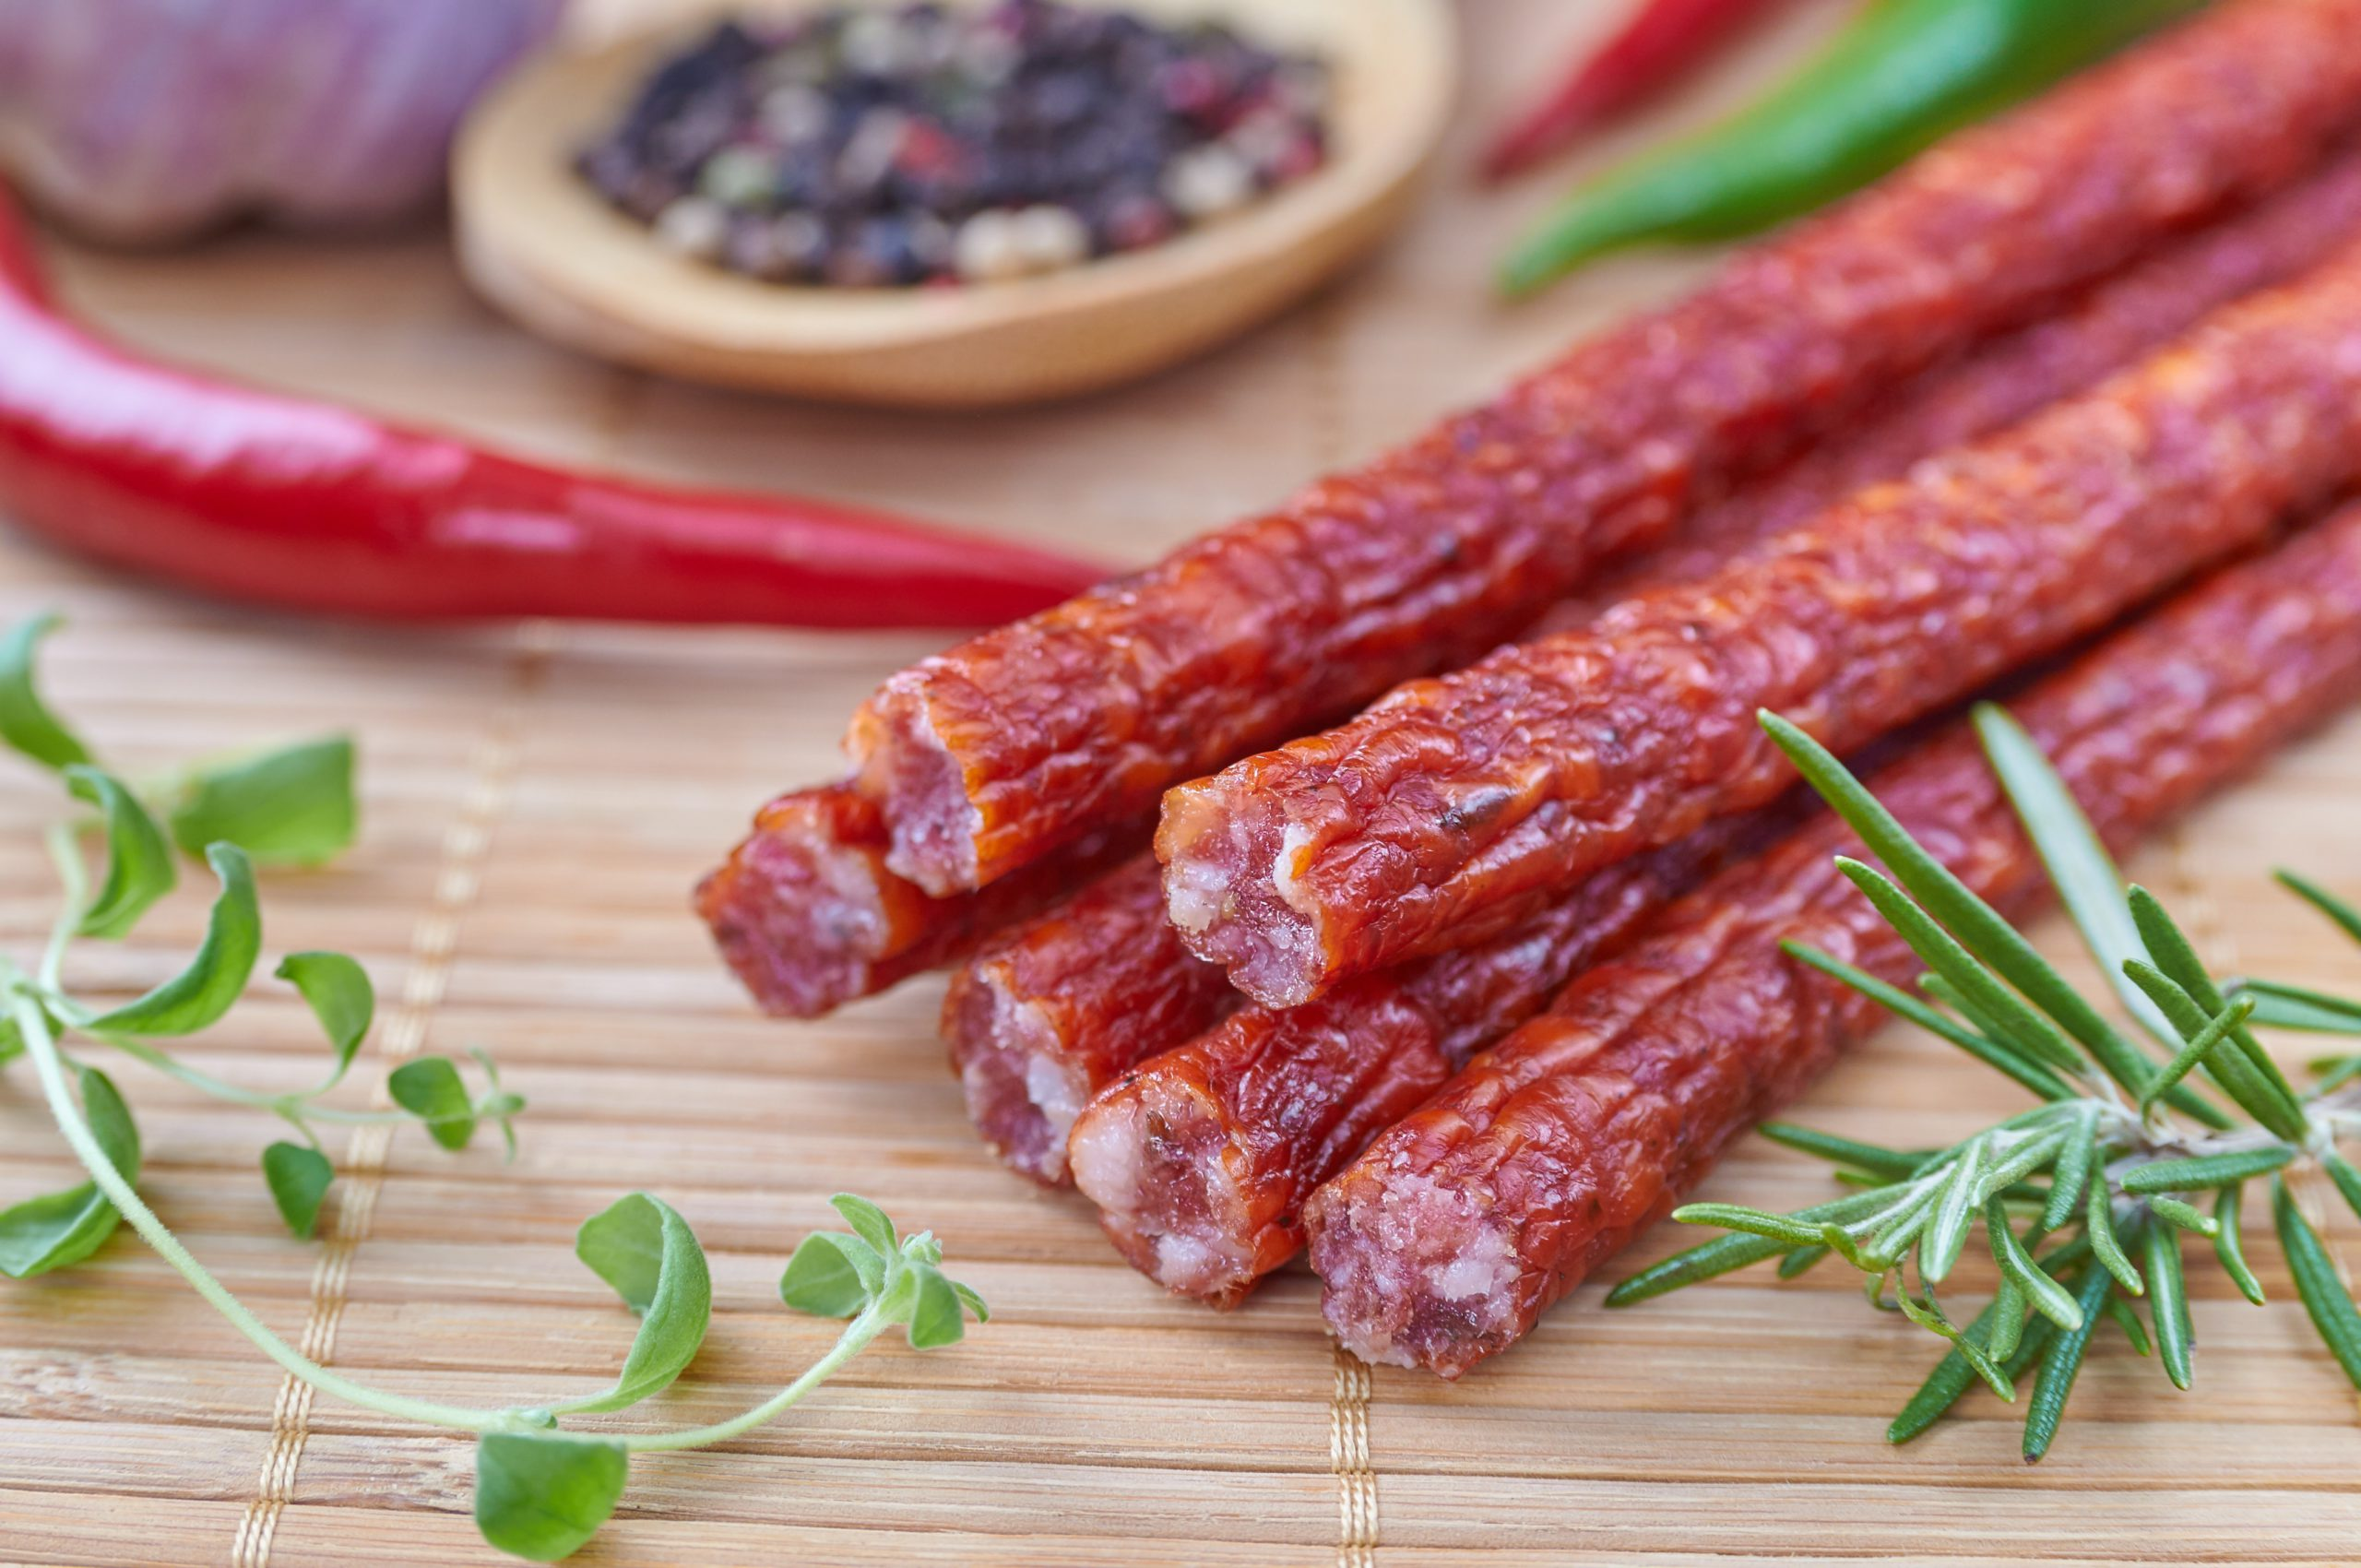 Meat sticks on a wooden table with a pepper and herbs.